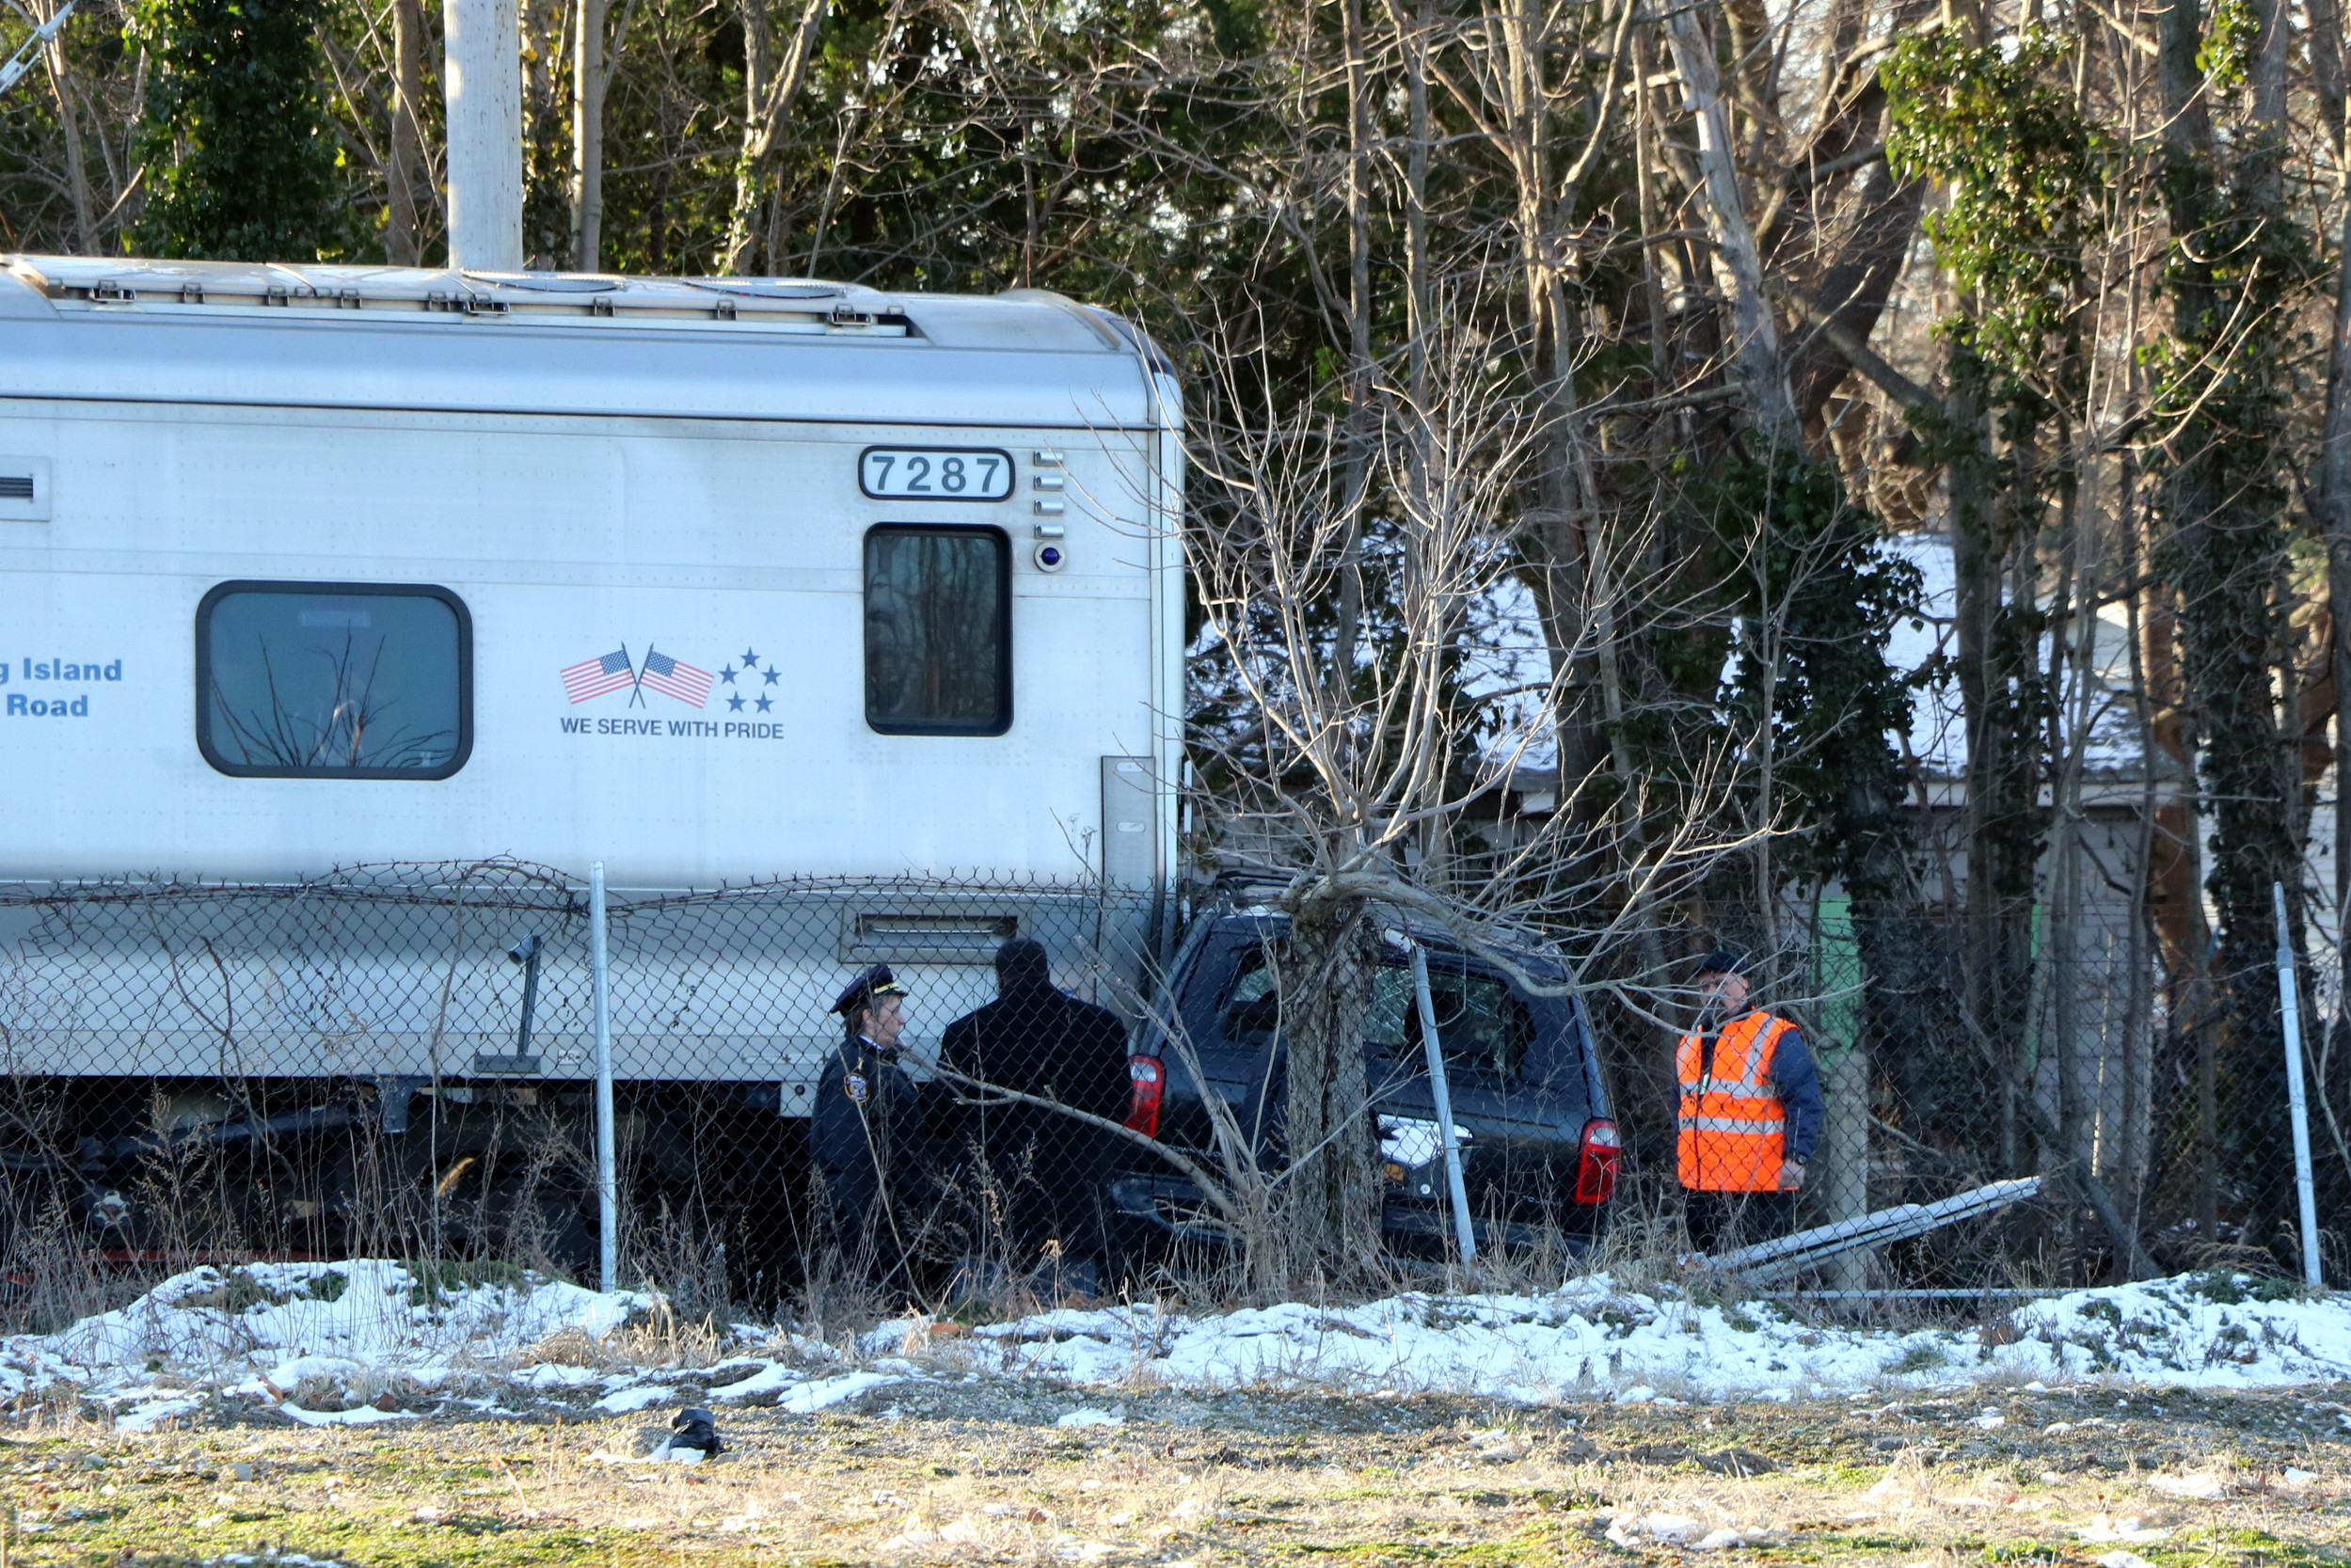 A 7 a.m. train hit a minivan crossing Franklin Avenue in Malverne on March 13.